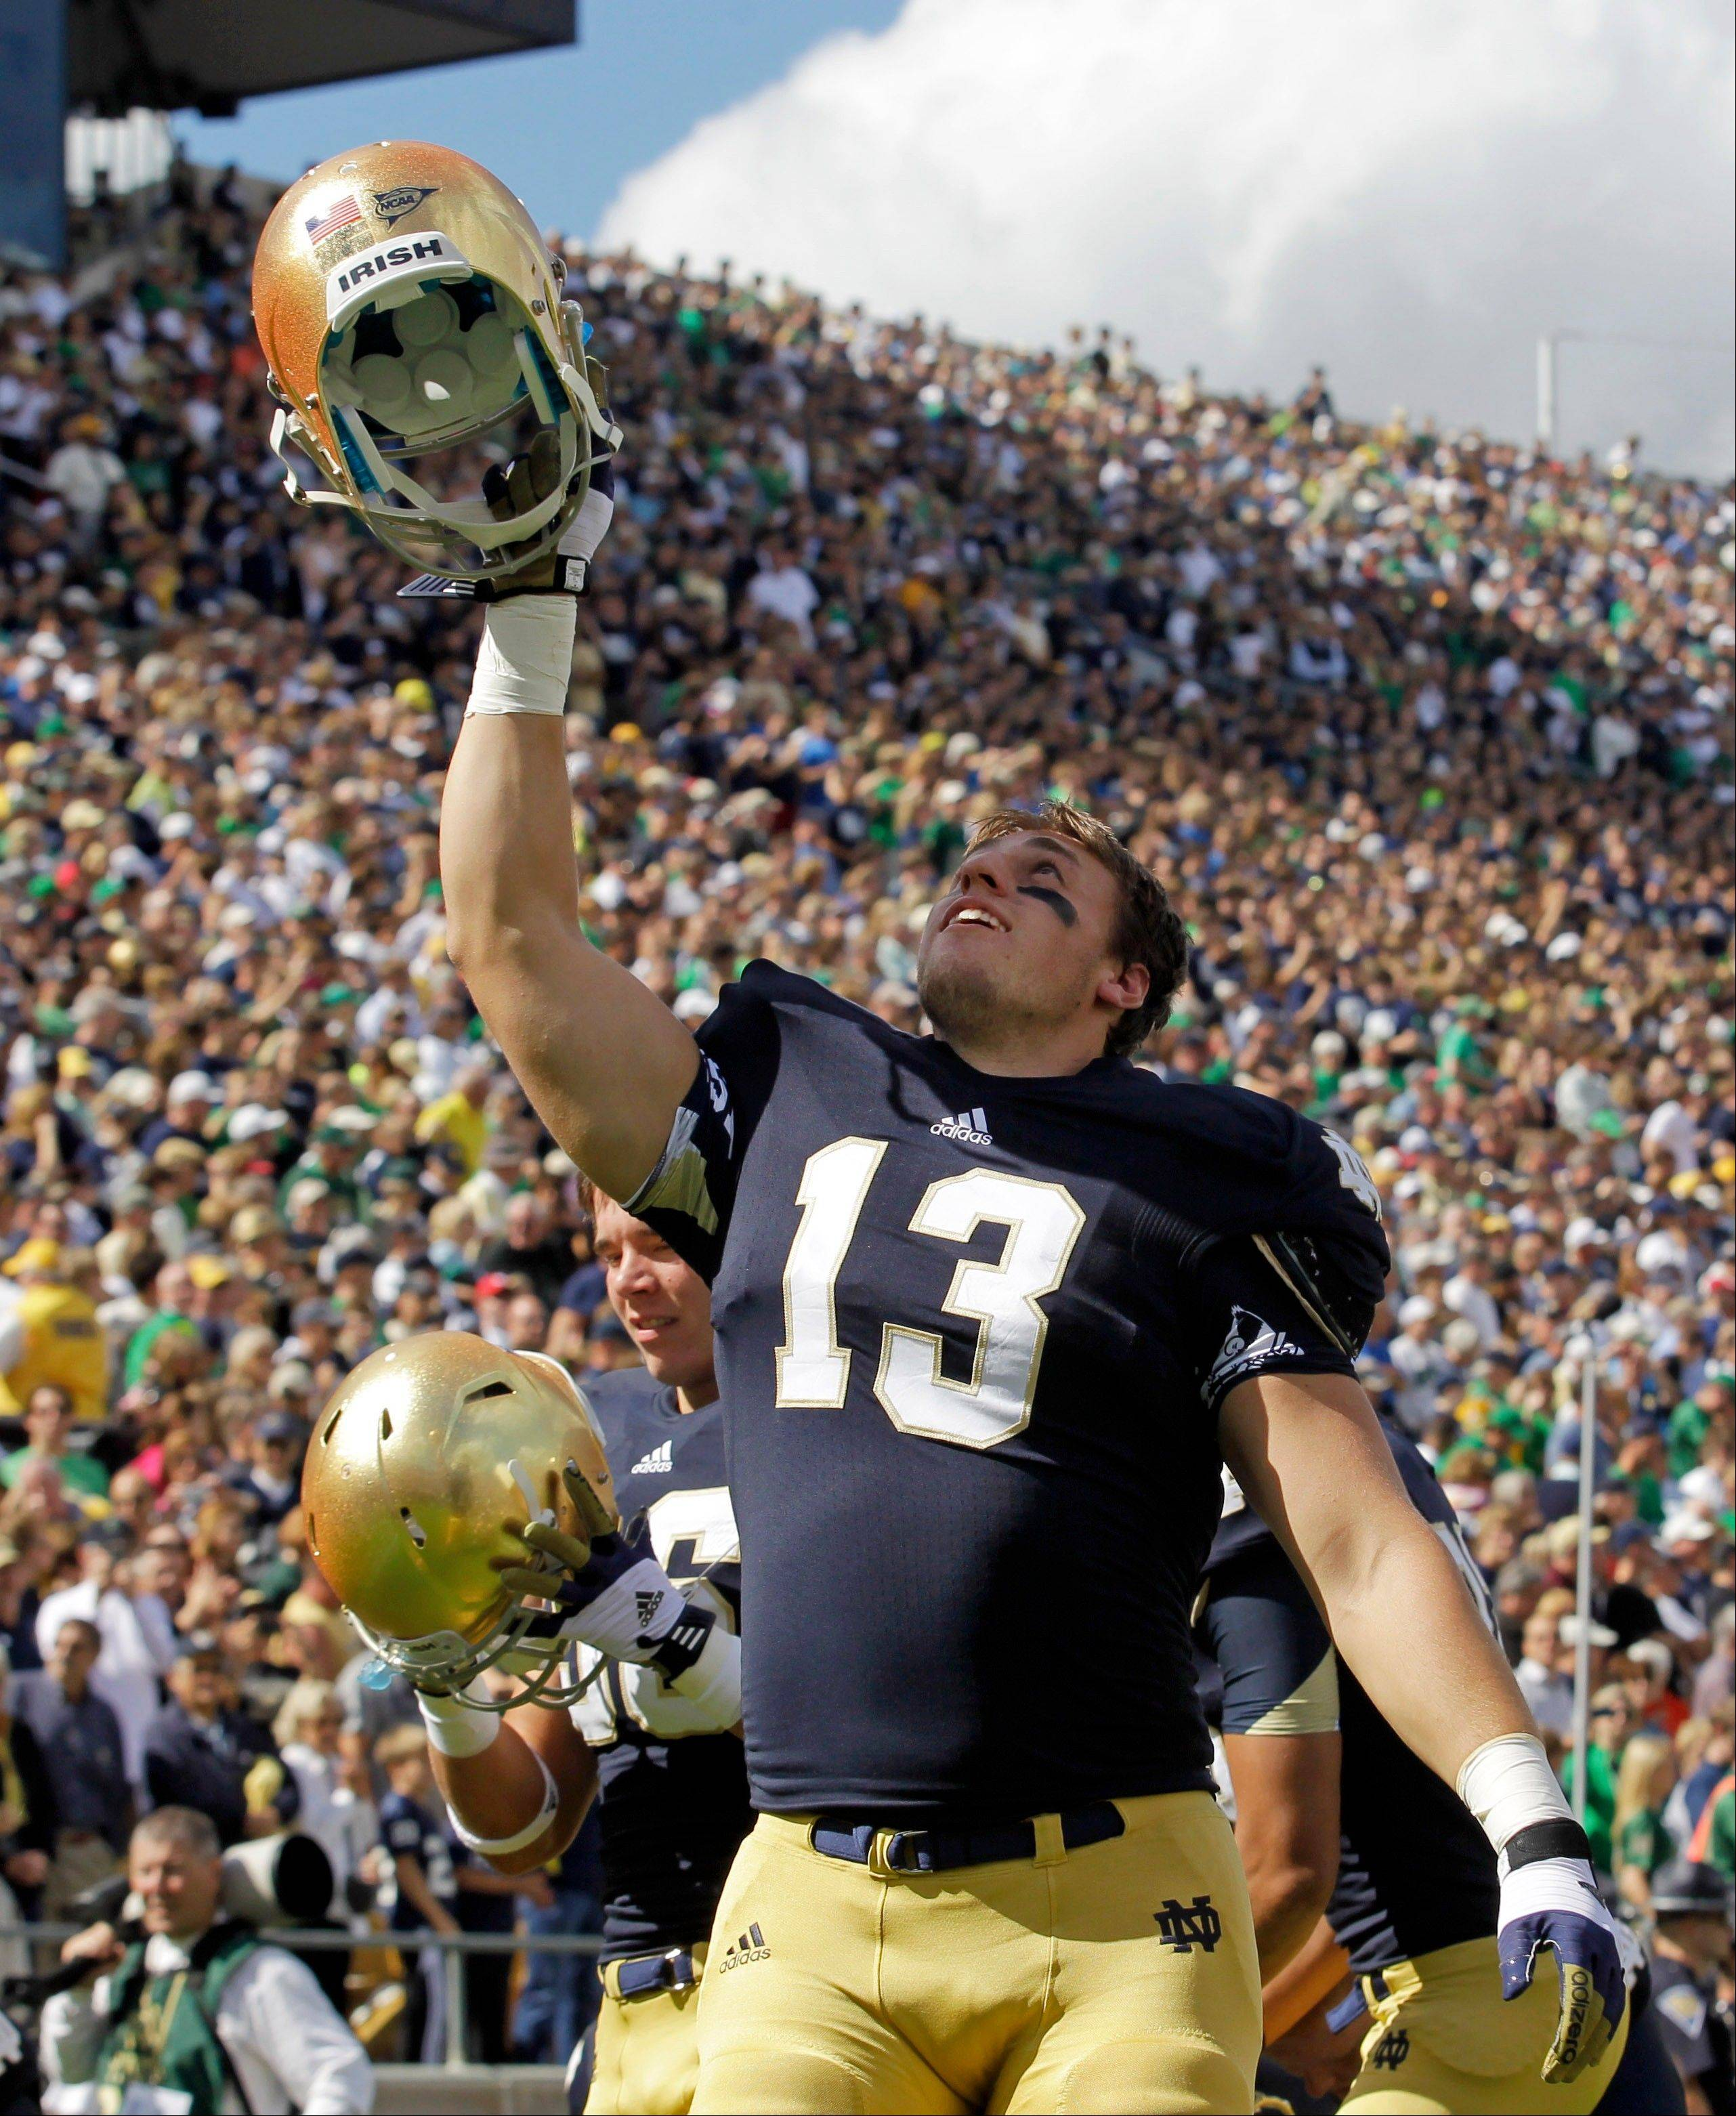 Notre Dame linebacker Danny Spond (13) cheers during the first half against Purdue in South Bend, Ind. The junior from Littleton, Colo., wasn't sure he'd play football again after he was struck by a debilitating migraine headache that left him barely able to move because the left side of his body was so numb. But after missing the first two games, Spond has bounced back and started eight games for the third-ranked Fighting Irish heading into Saturday's game against Wake Forest.